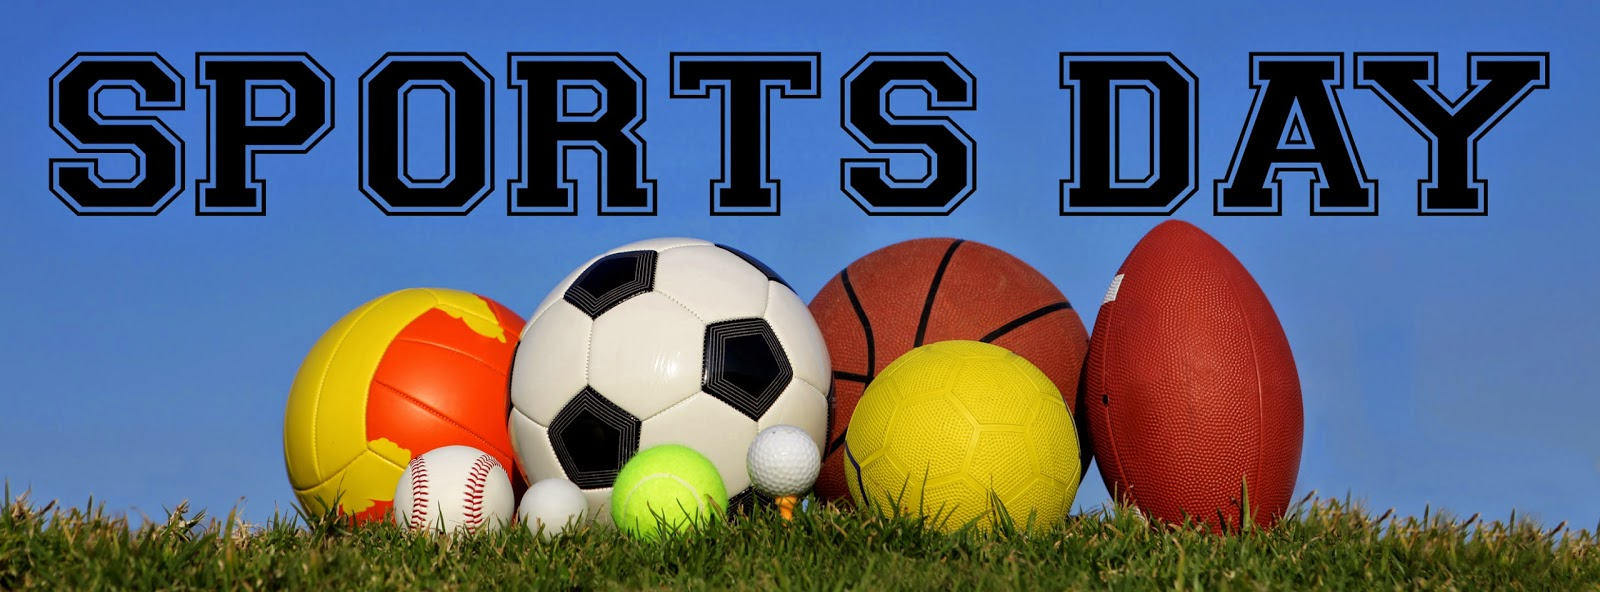 sports church sport needs park schools special delamere annual friday gate golden college june events class st few play event